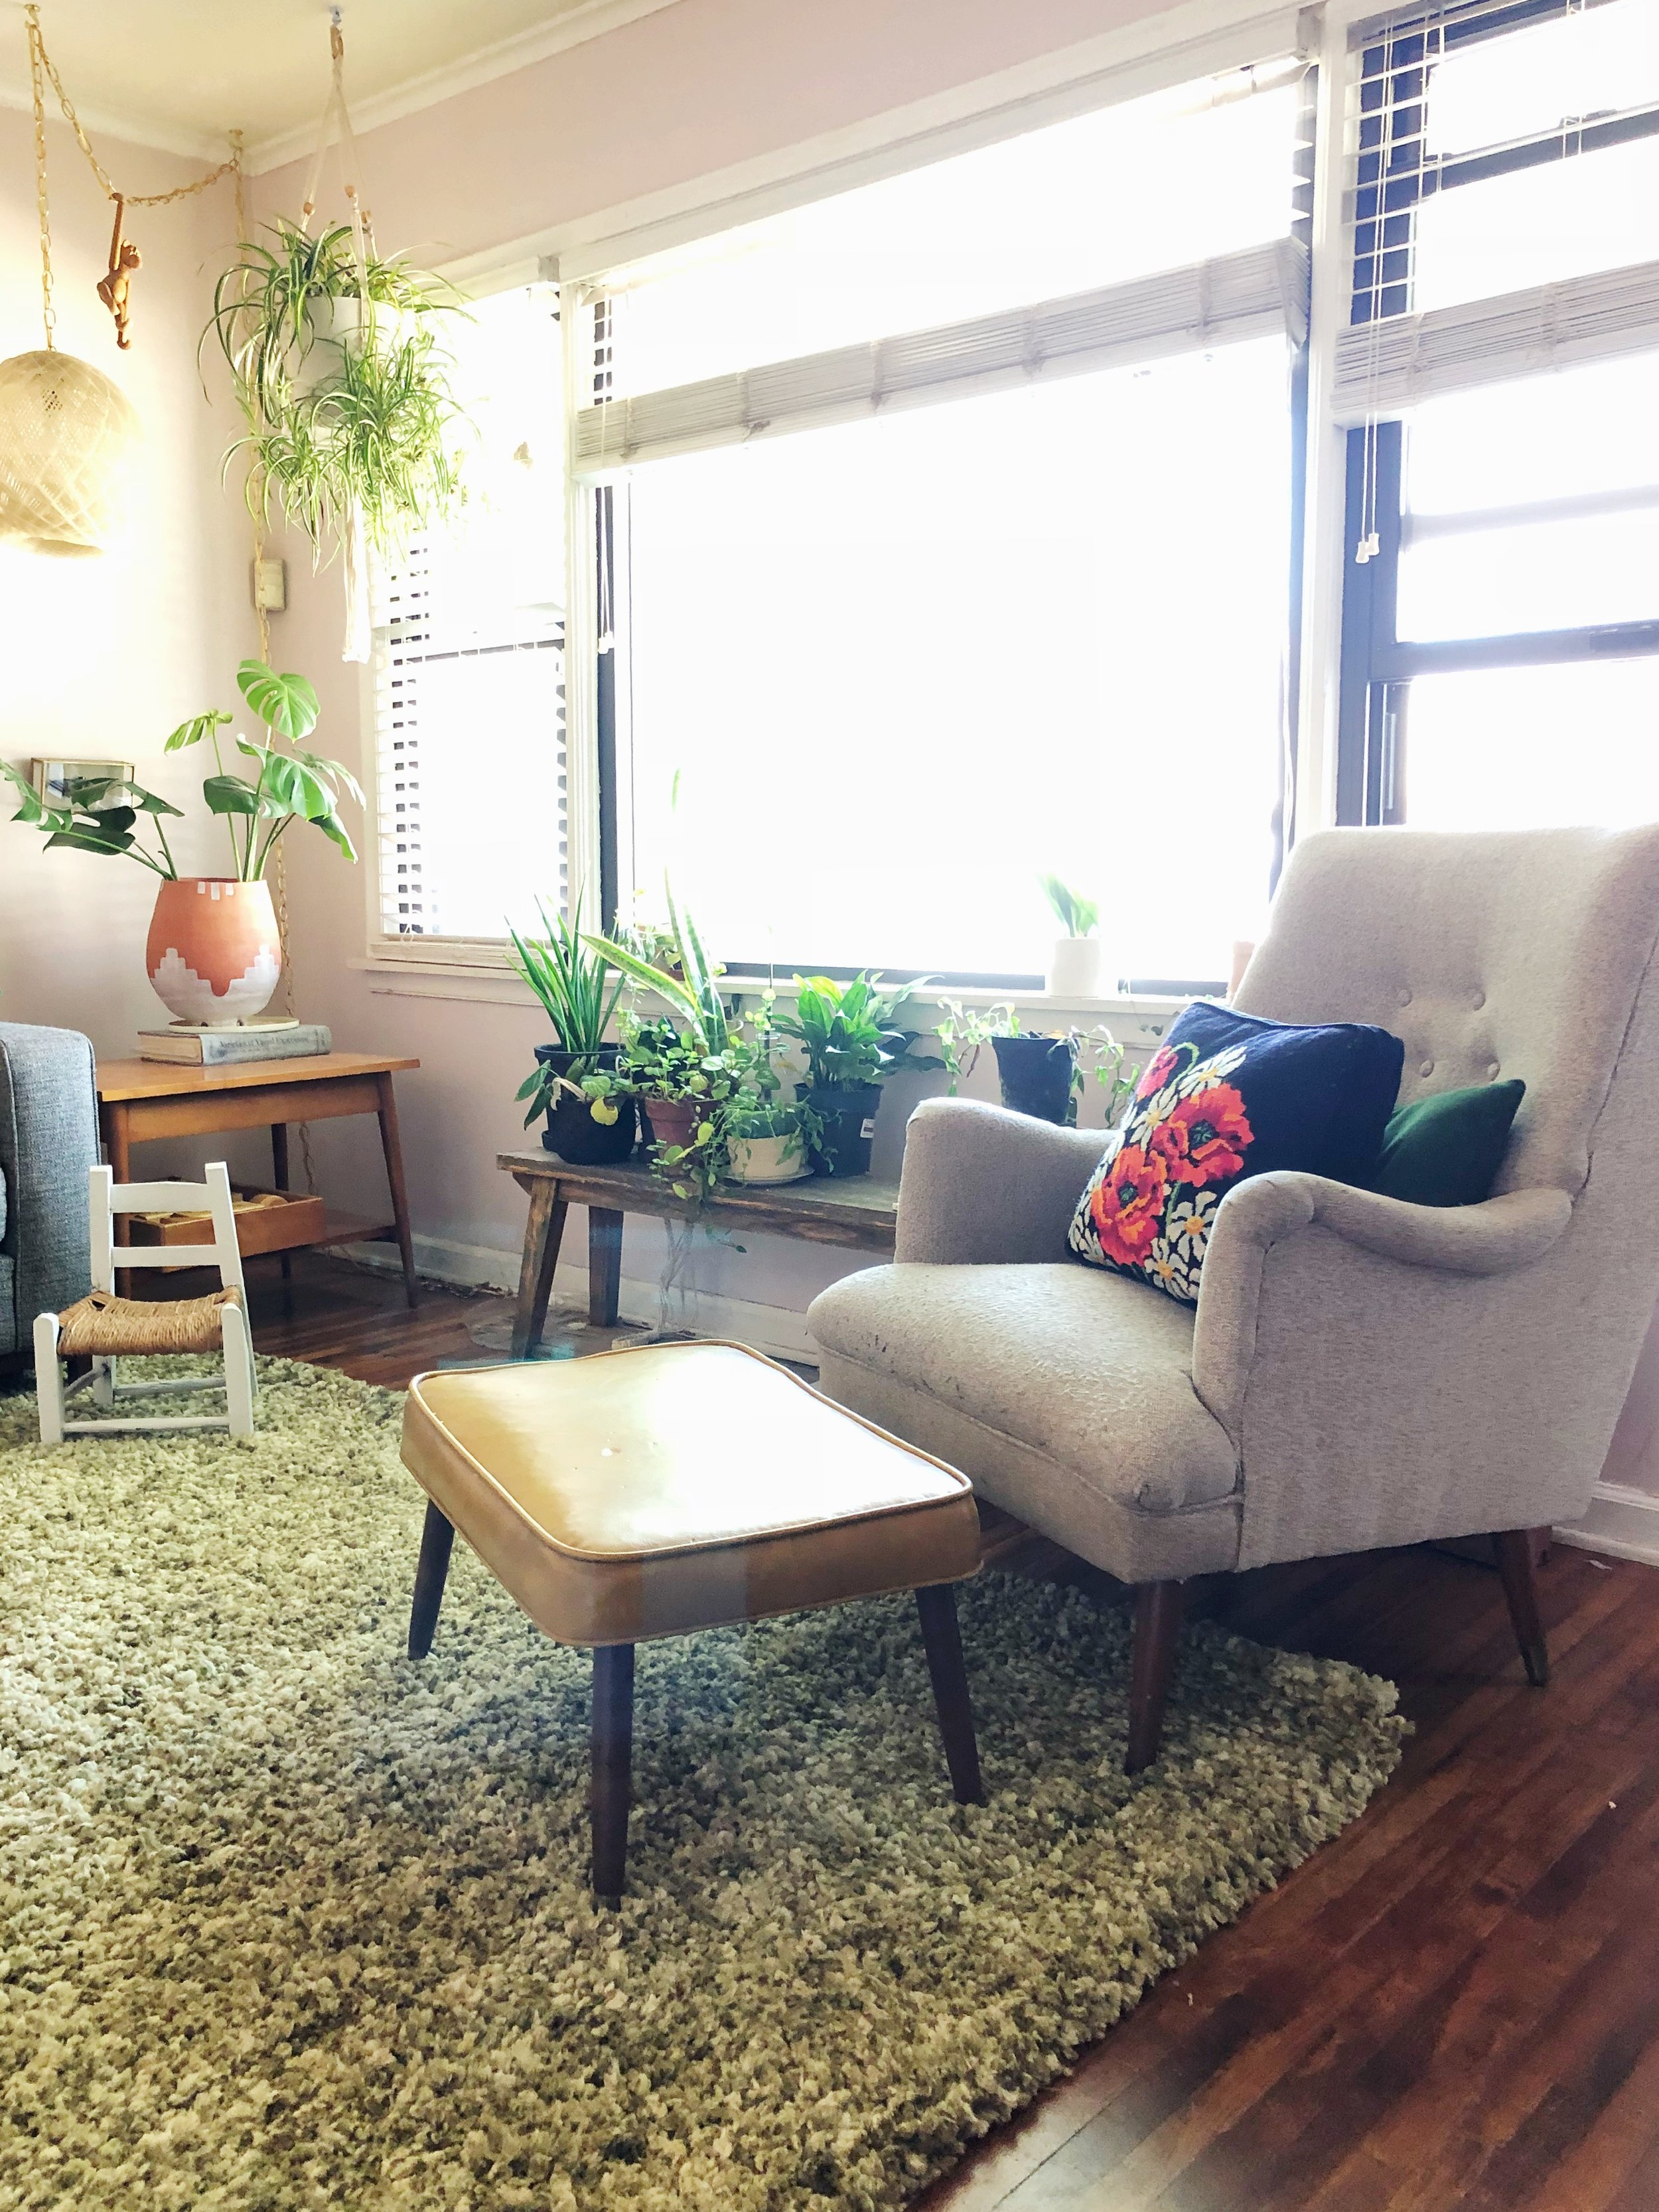 Daly added a thrifted green shag rug to her living room this week. What do you think? She thinks it's more of a boyfriend rather than a husband. Good for the moment, but not forever.